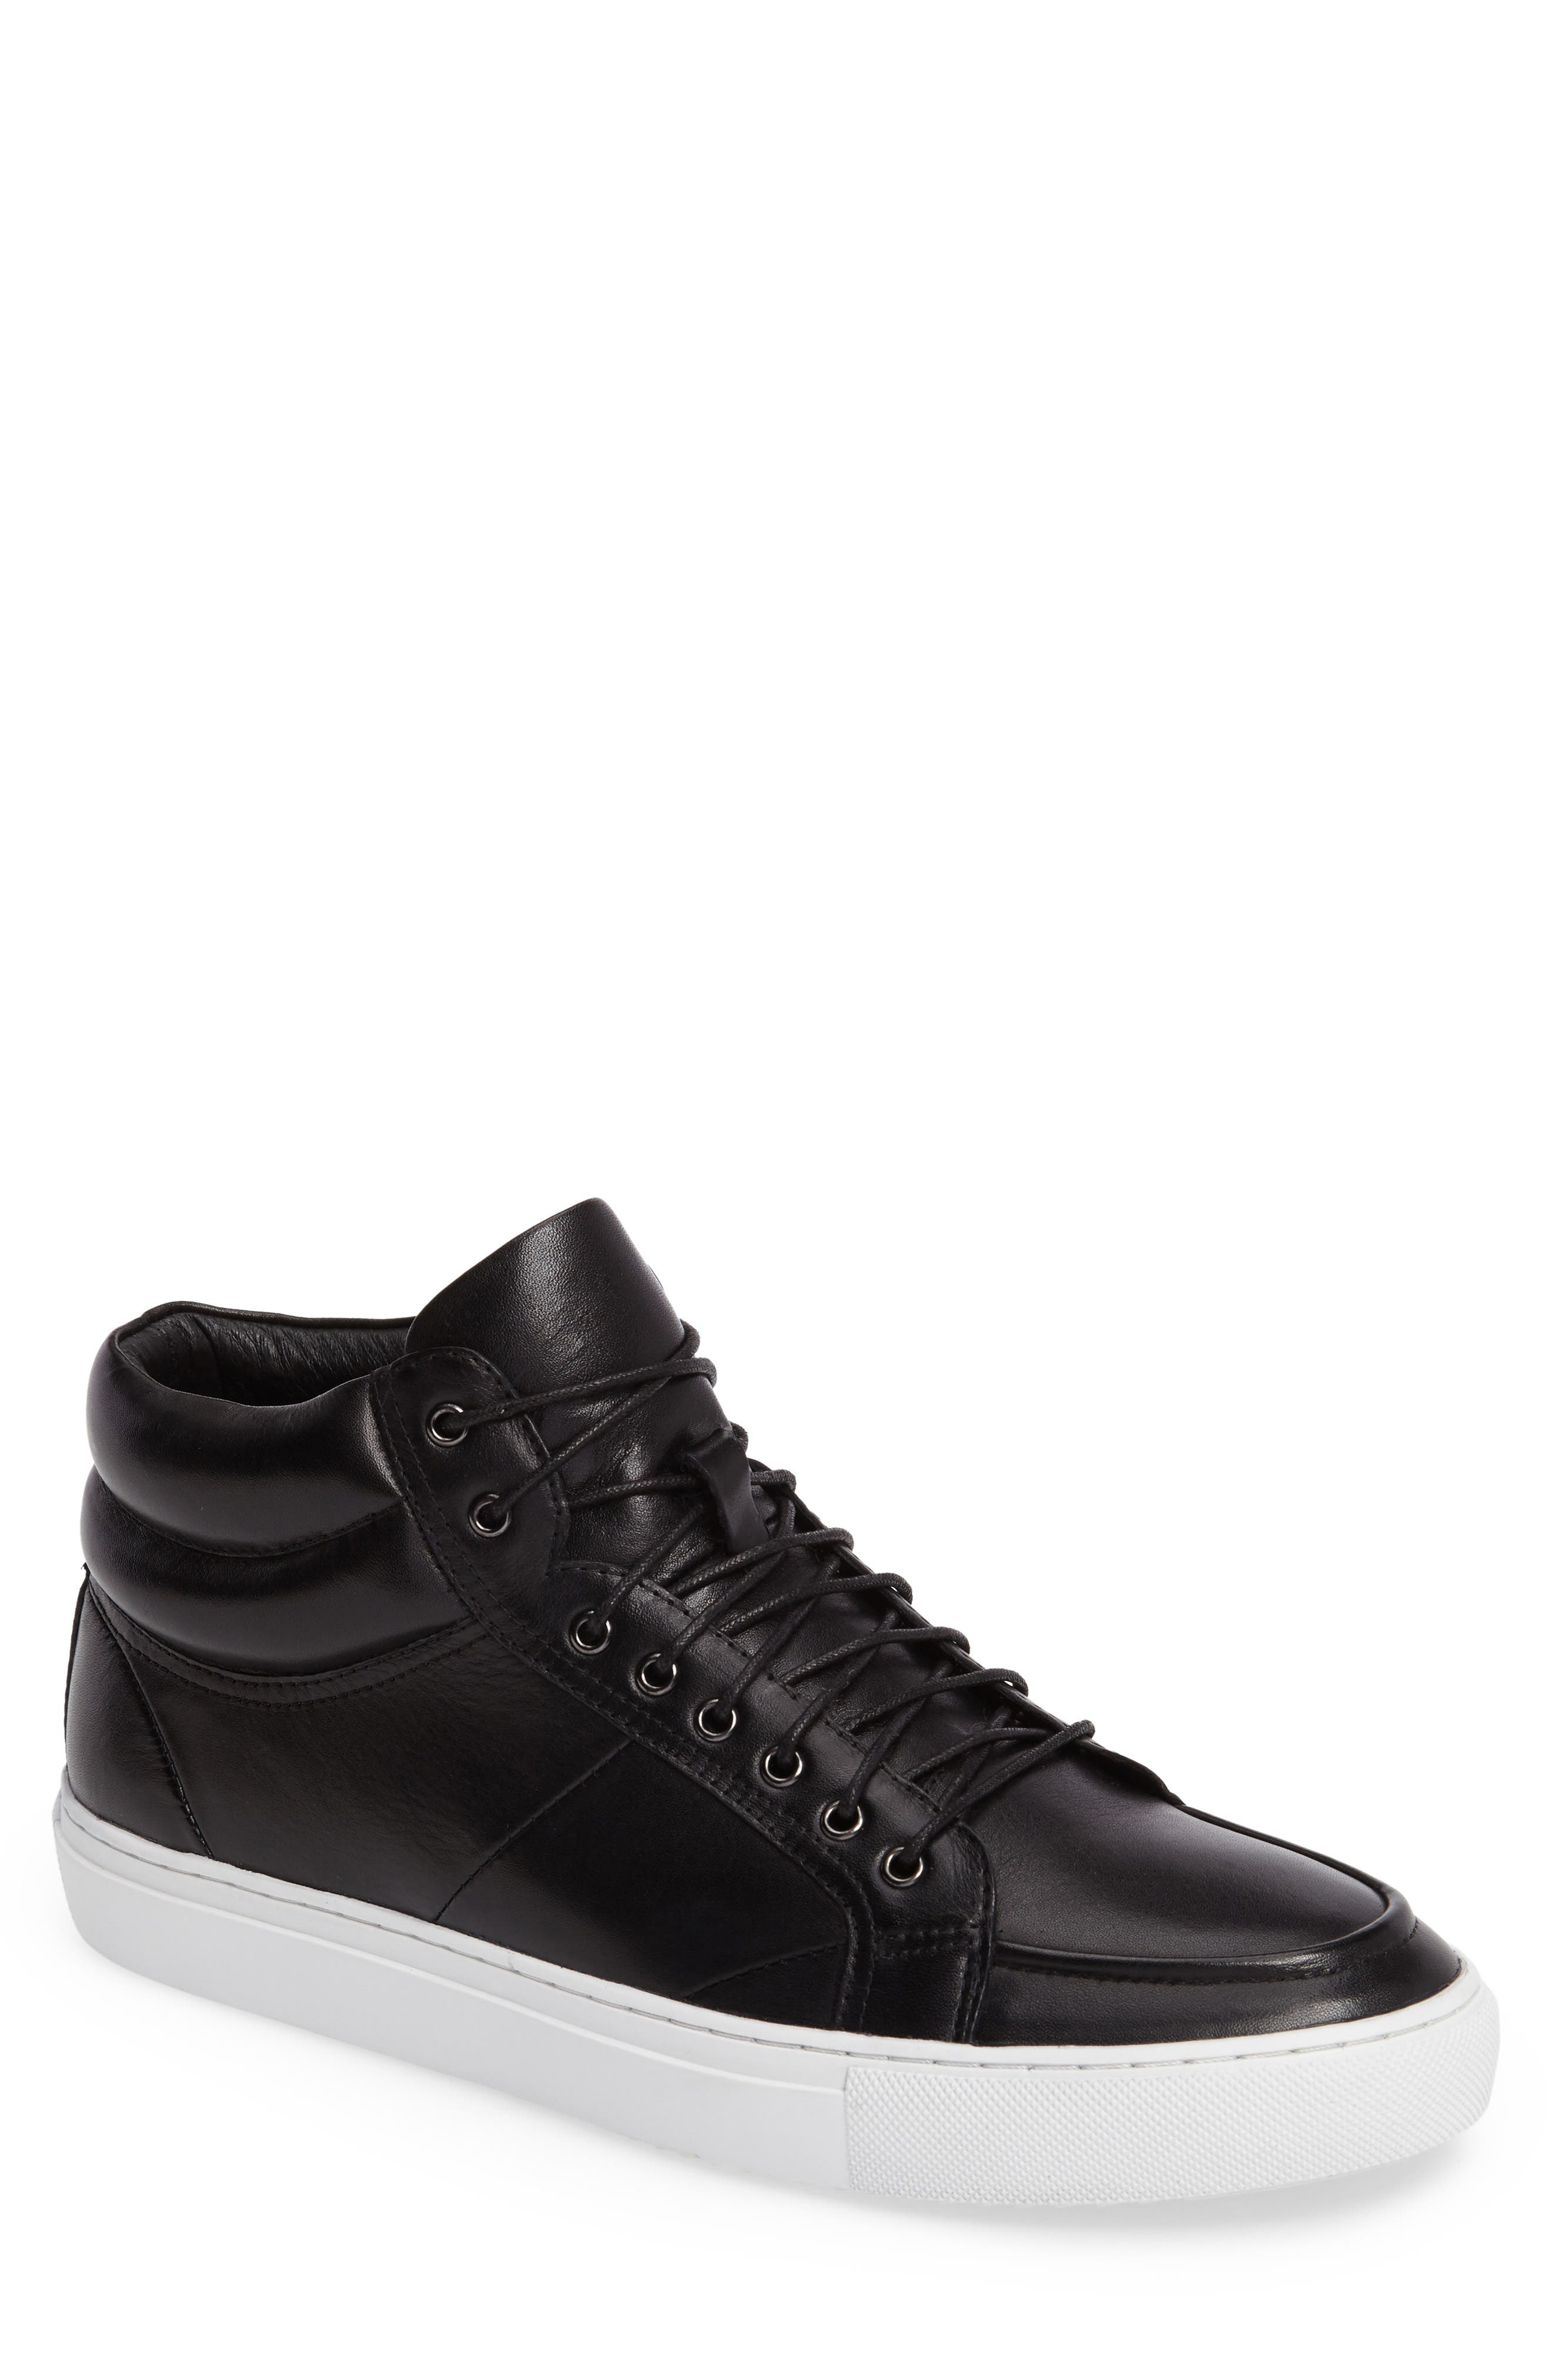 Alternate Image 1 Selected - Zanzara Clef Sneaker (Men)